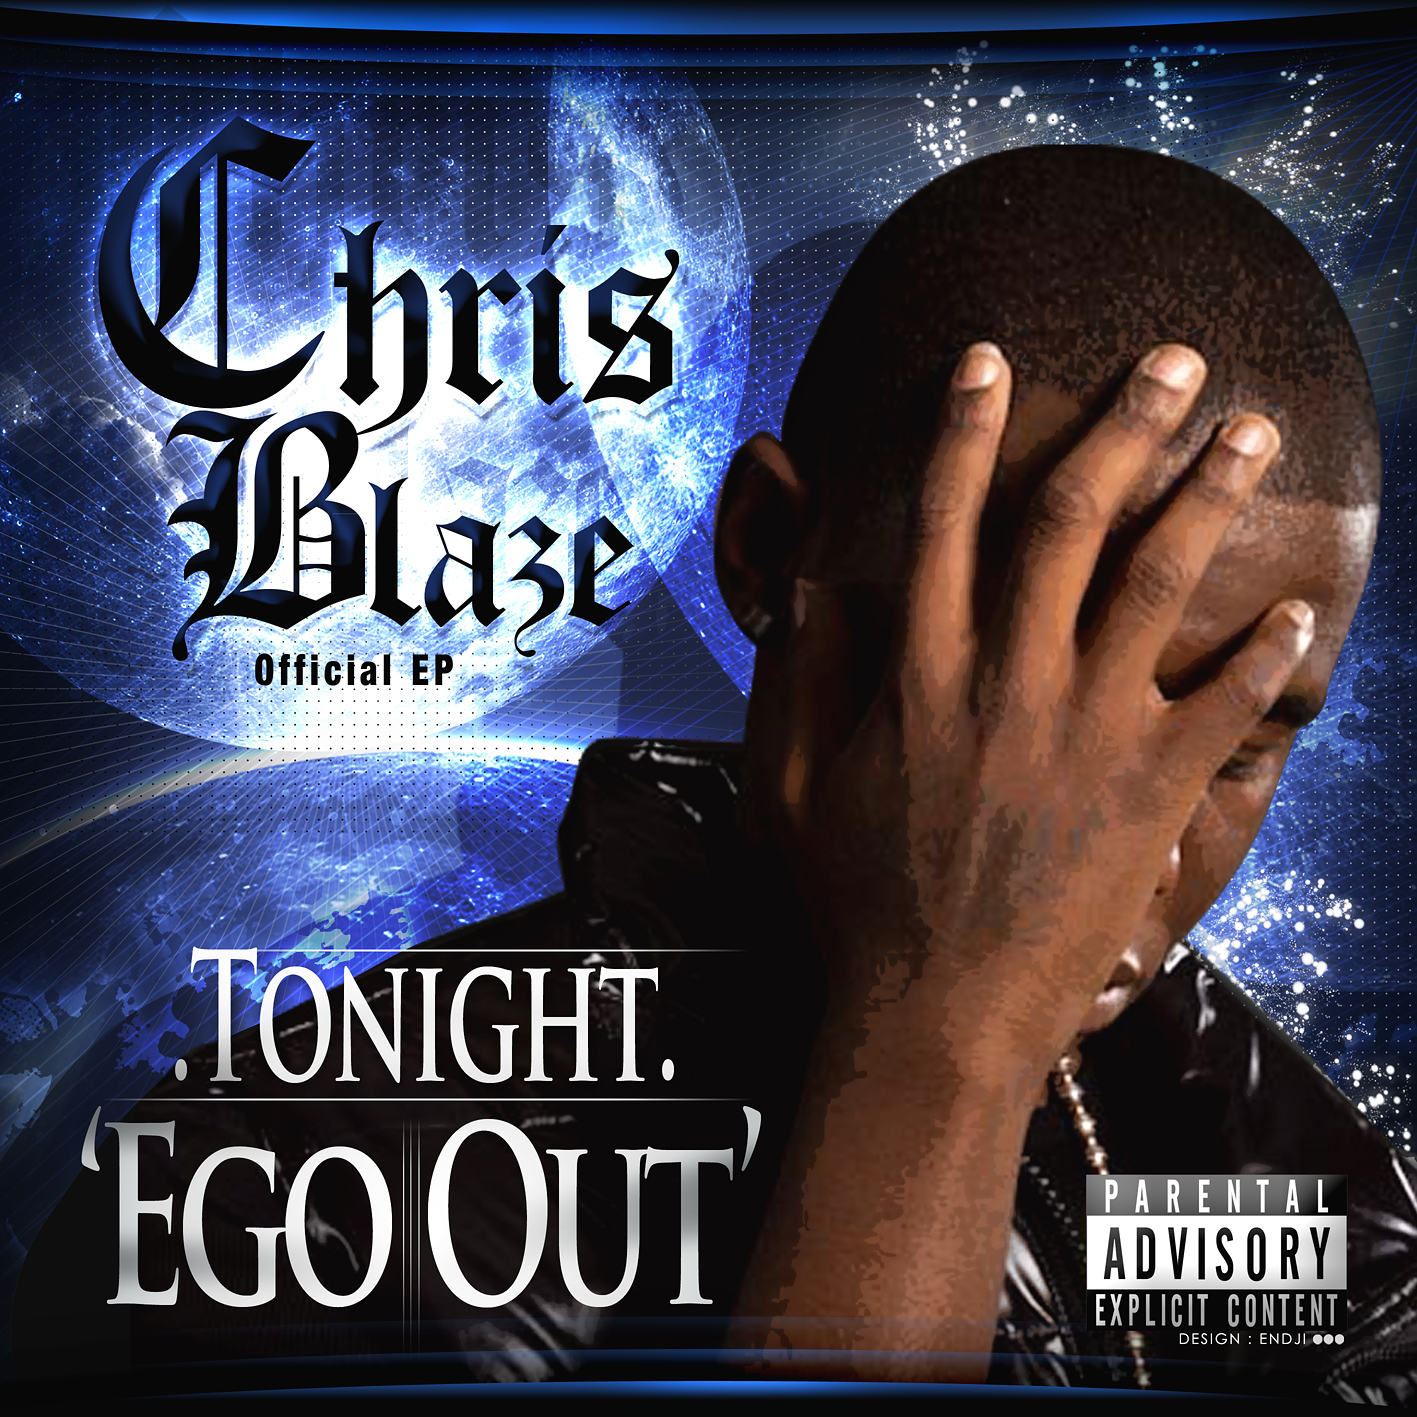 chris-blaze-tonight-ego-out